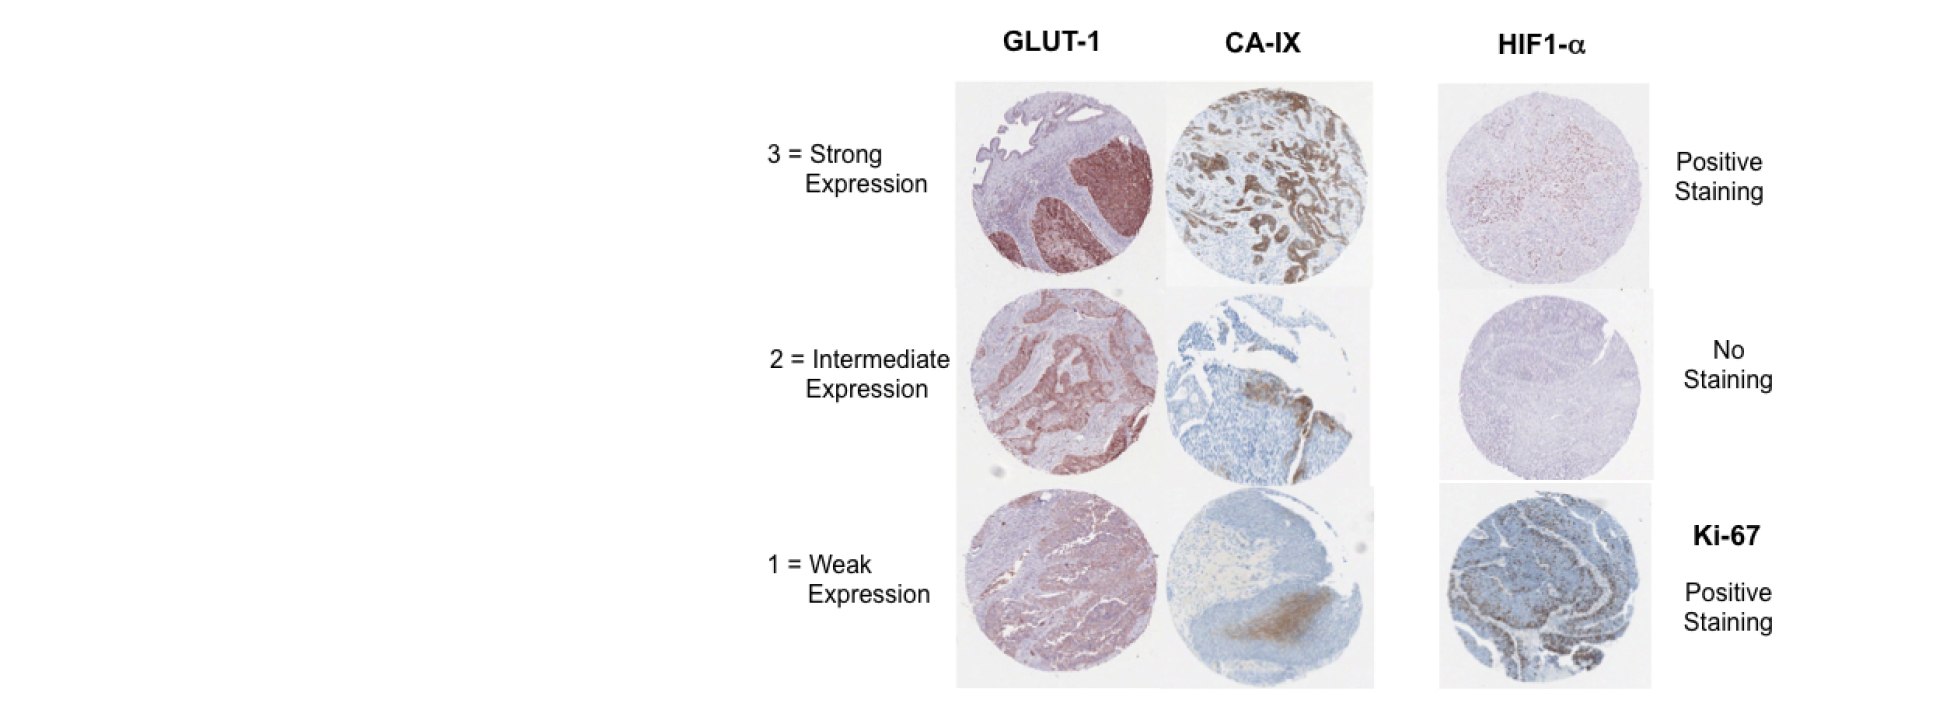 Expression status of hypoxia related markers in bladder cancer tissue.